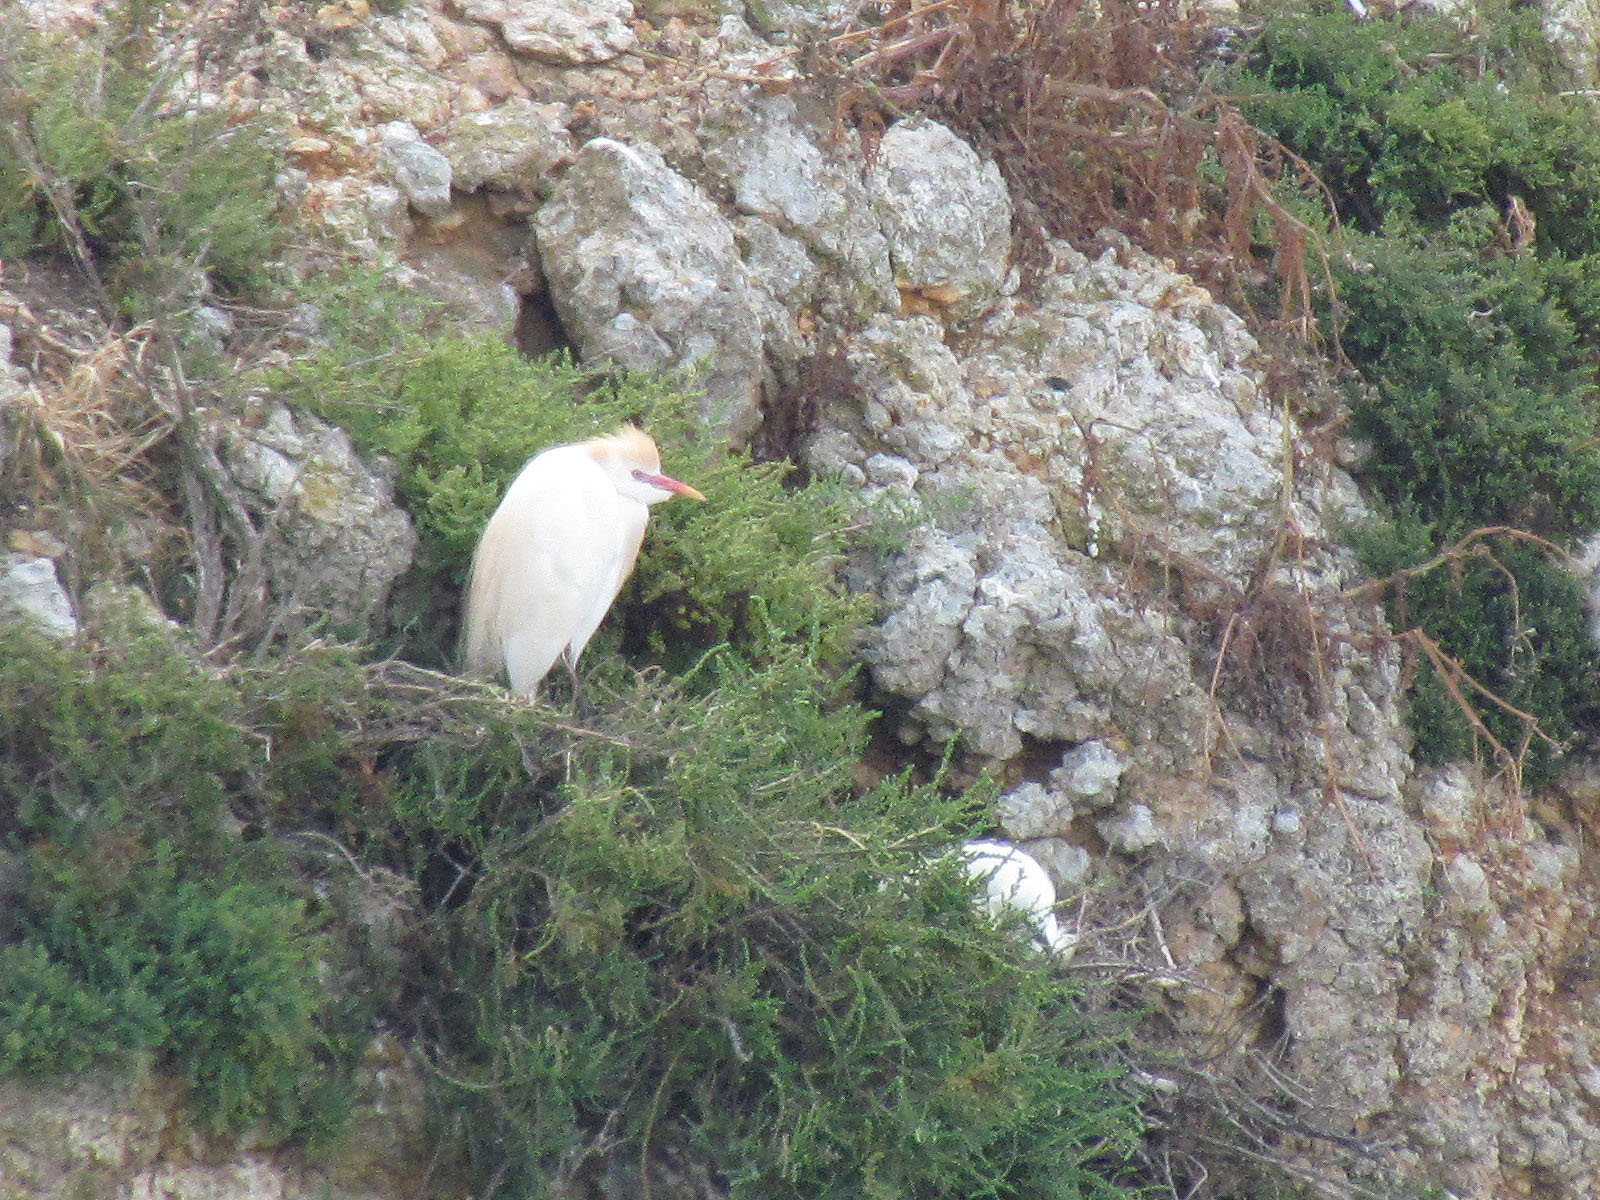 Cattle Egret on the nest